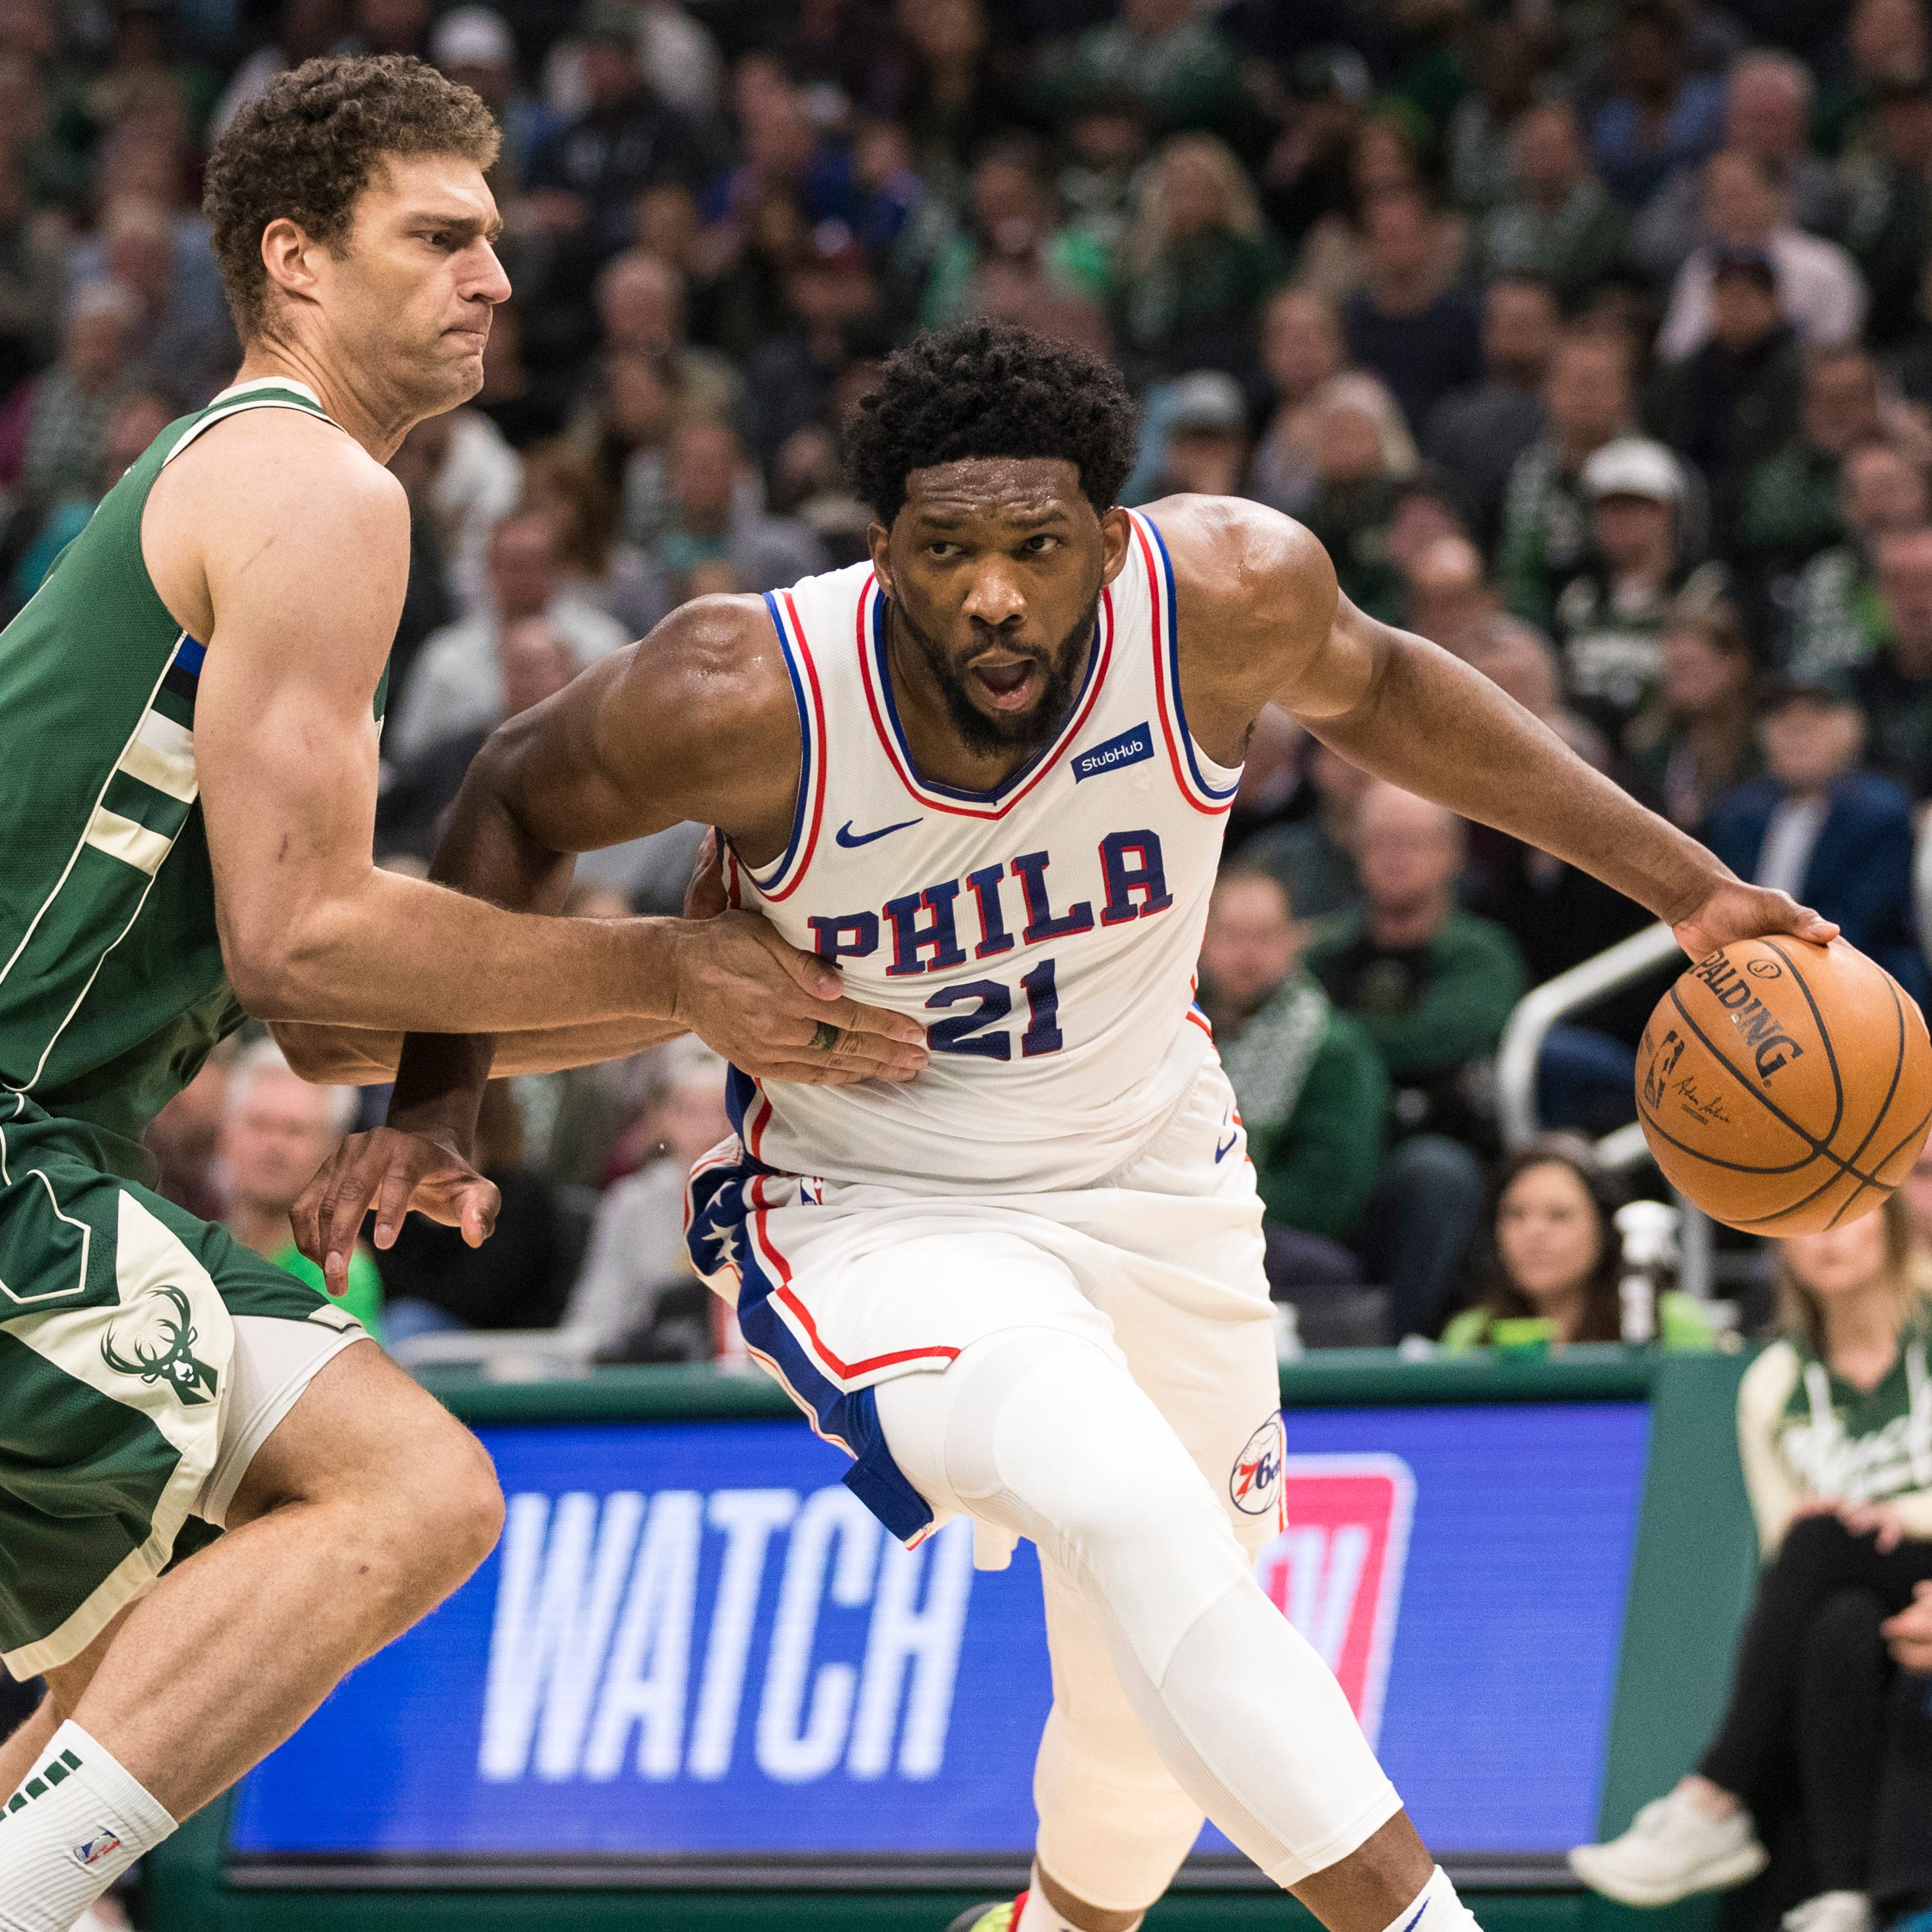 76ers 130, Bucks 125: Joel Embiid overshadows Giannis' career-high 52-point outburst